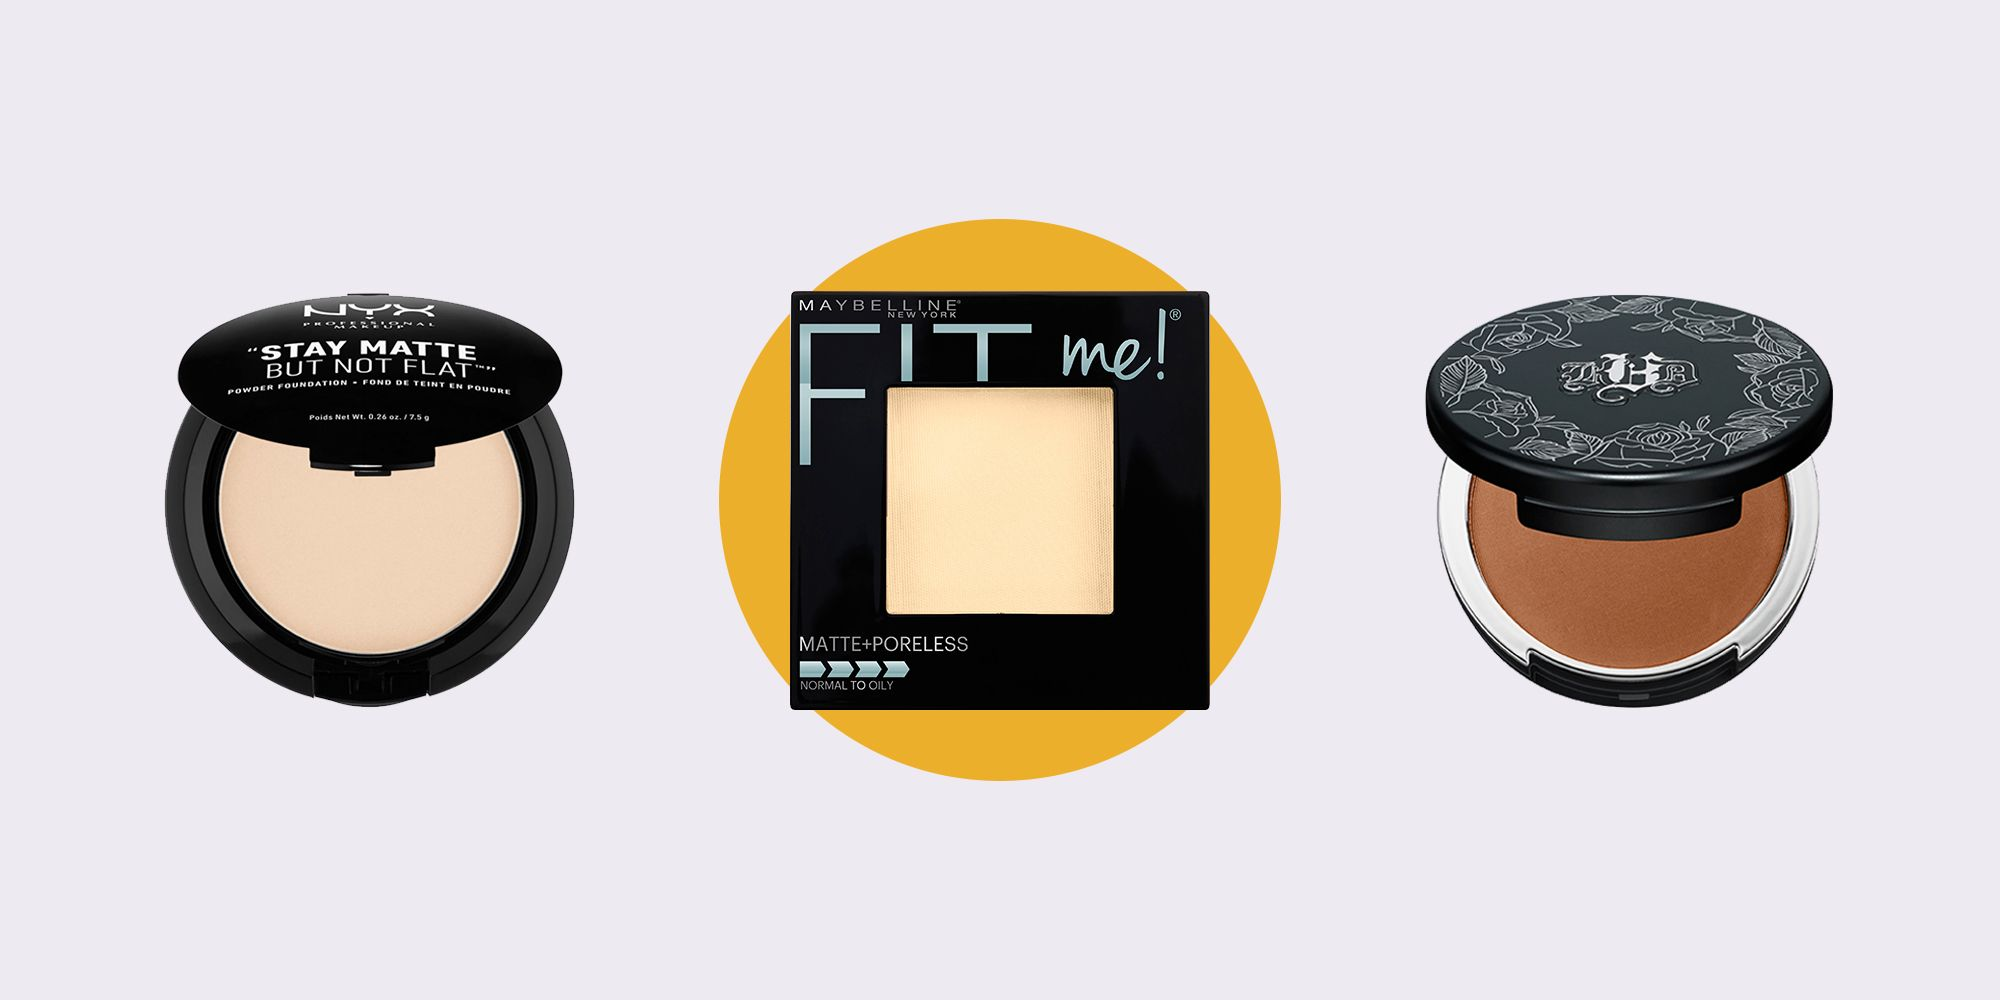 5 Best Powder Foundations The Best Powder Foundations For Oily Normal And Dry Skin